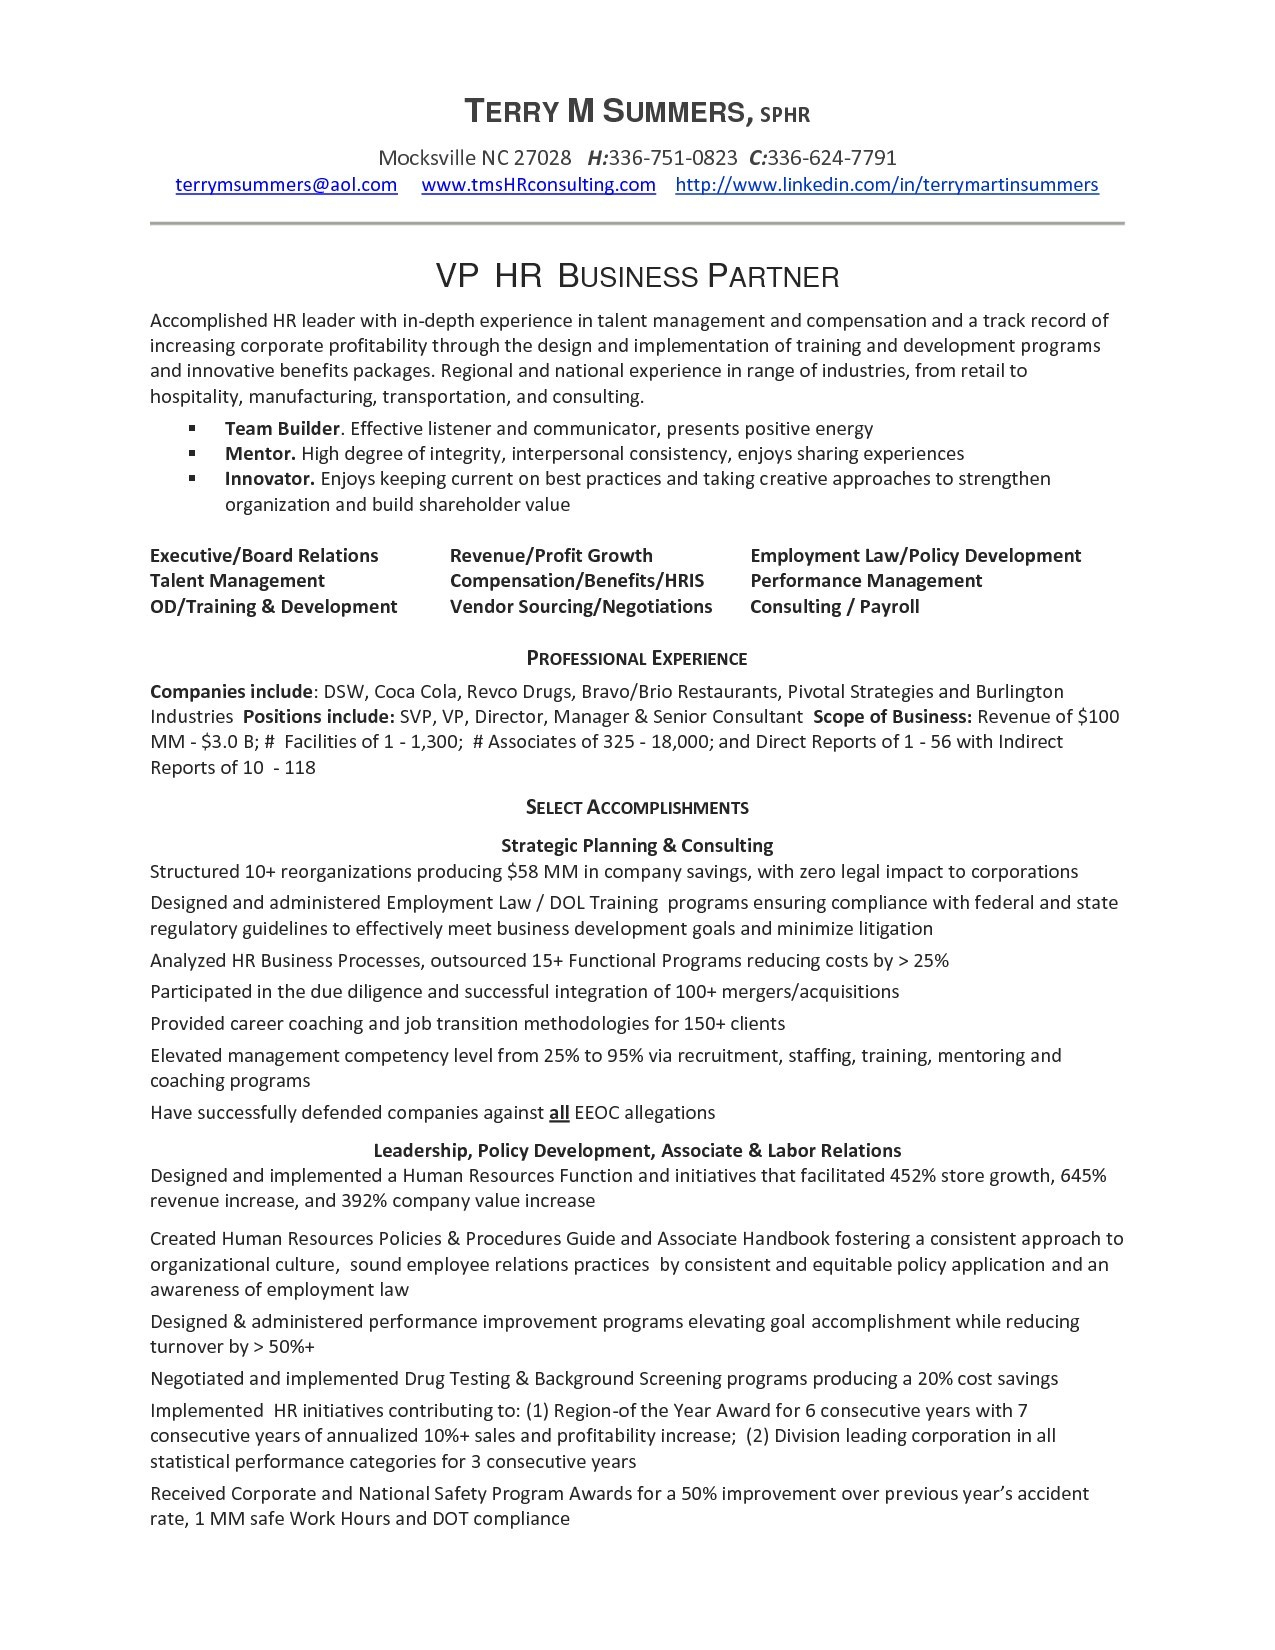 Business Partnership Letter Template - Letter Intent Template Business Partnership Refrence Letter